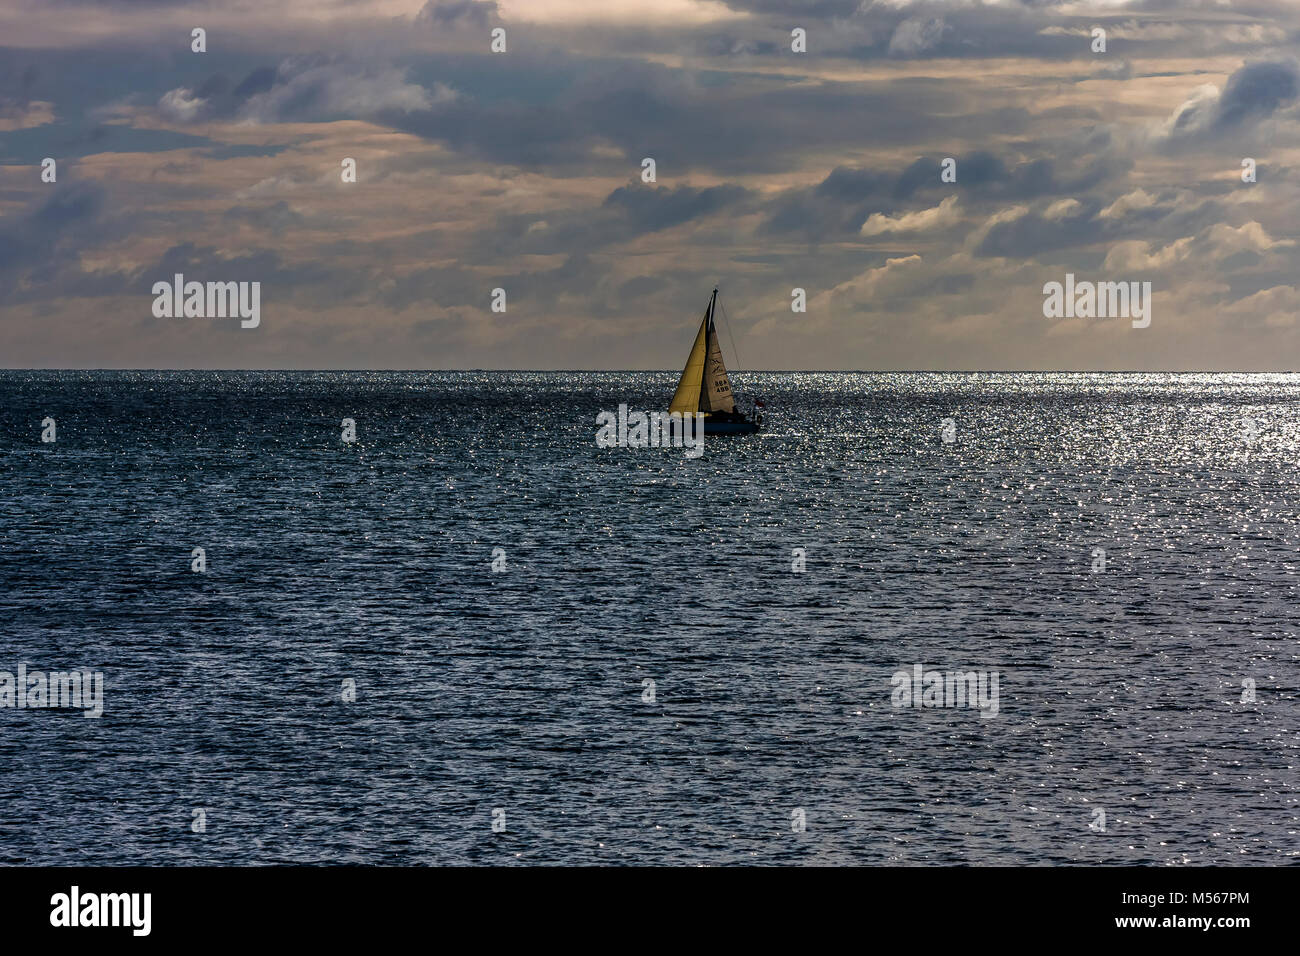 Yacht sailing in Brixham bay in South Devon, UK. - Stock Image